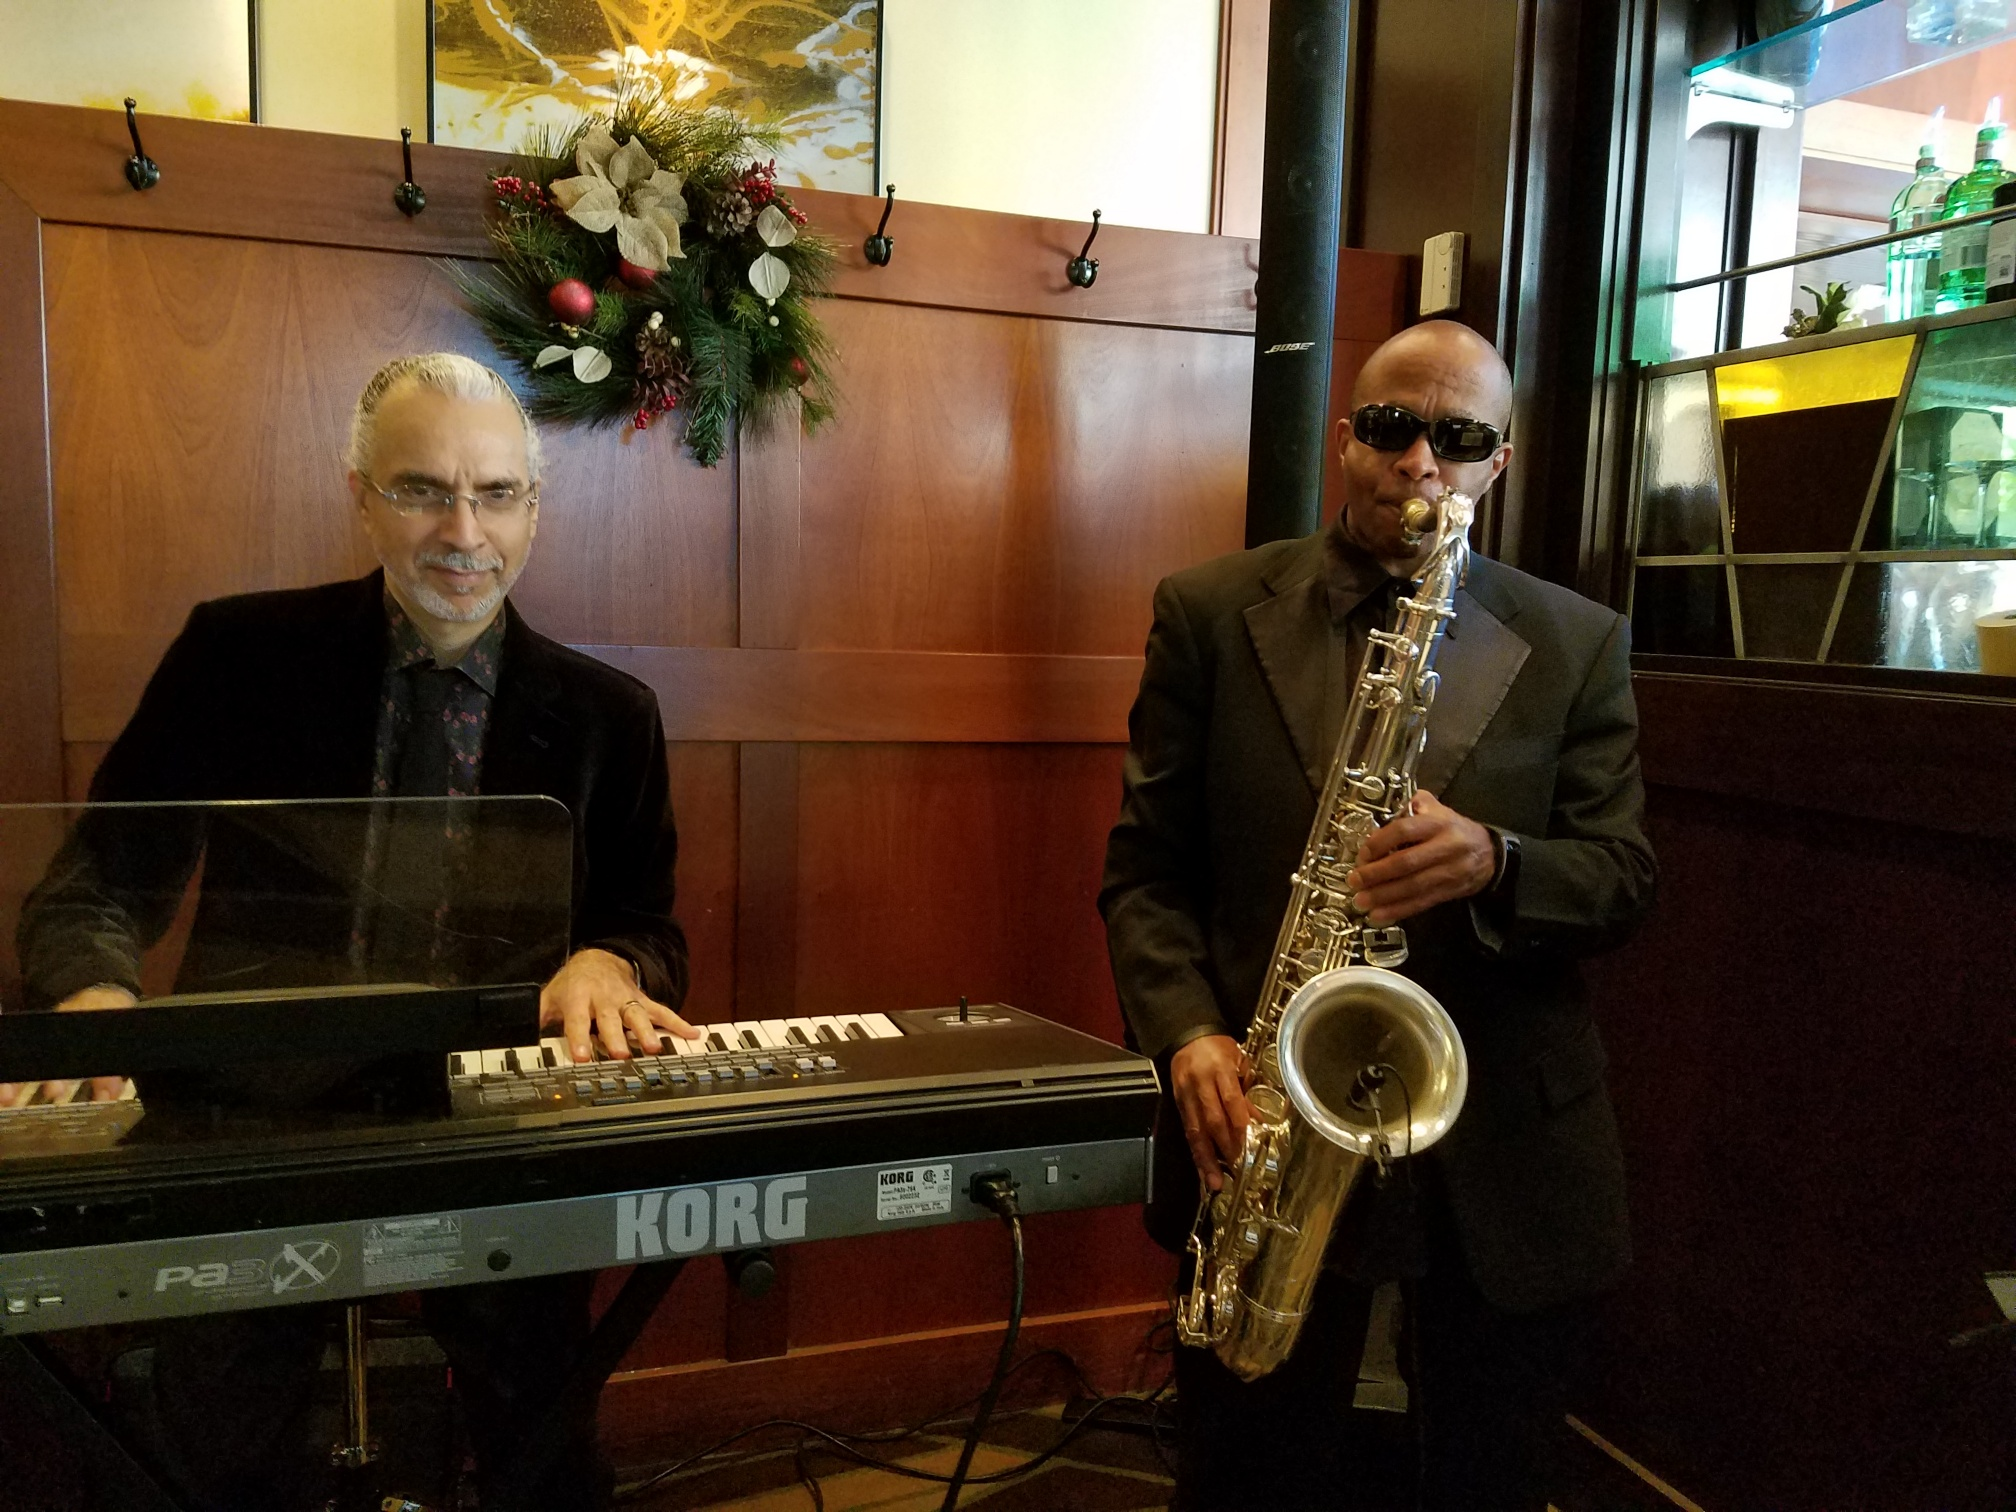 Efi Tovia (Keyboard), and Johnny Long (Tenor Sax) playing show in Crystal City, VA